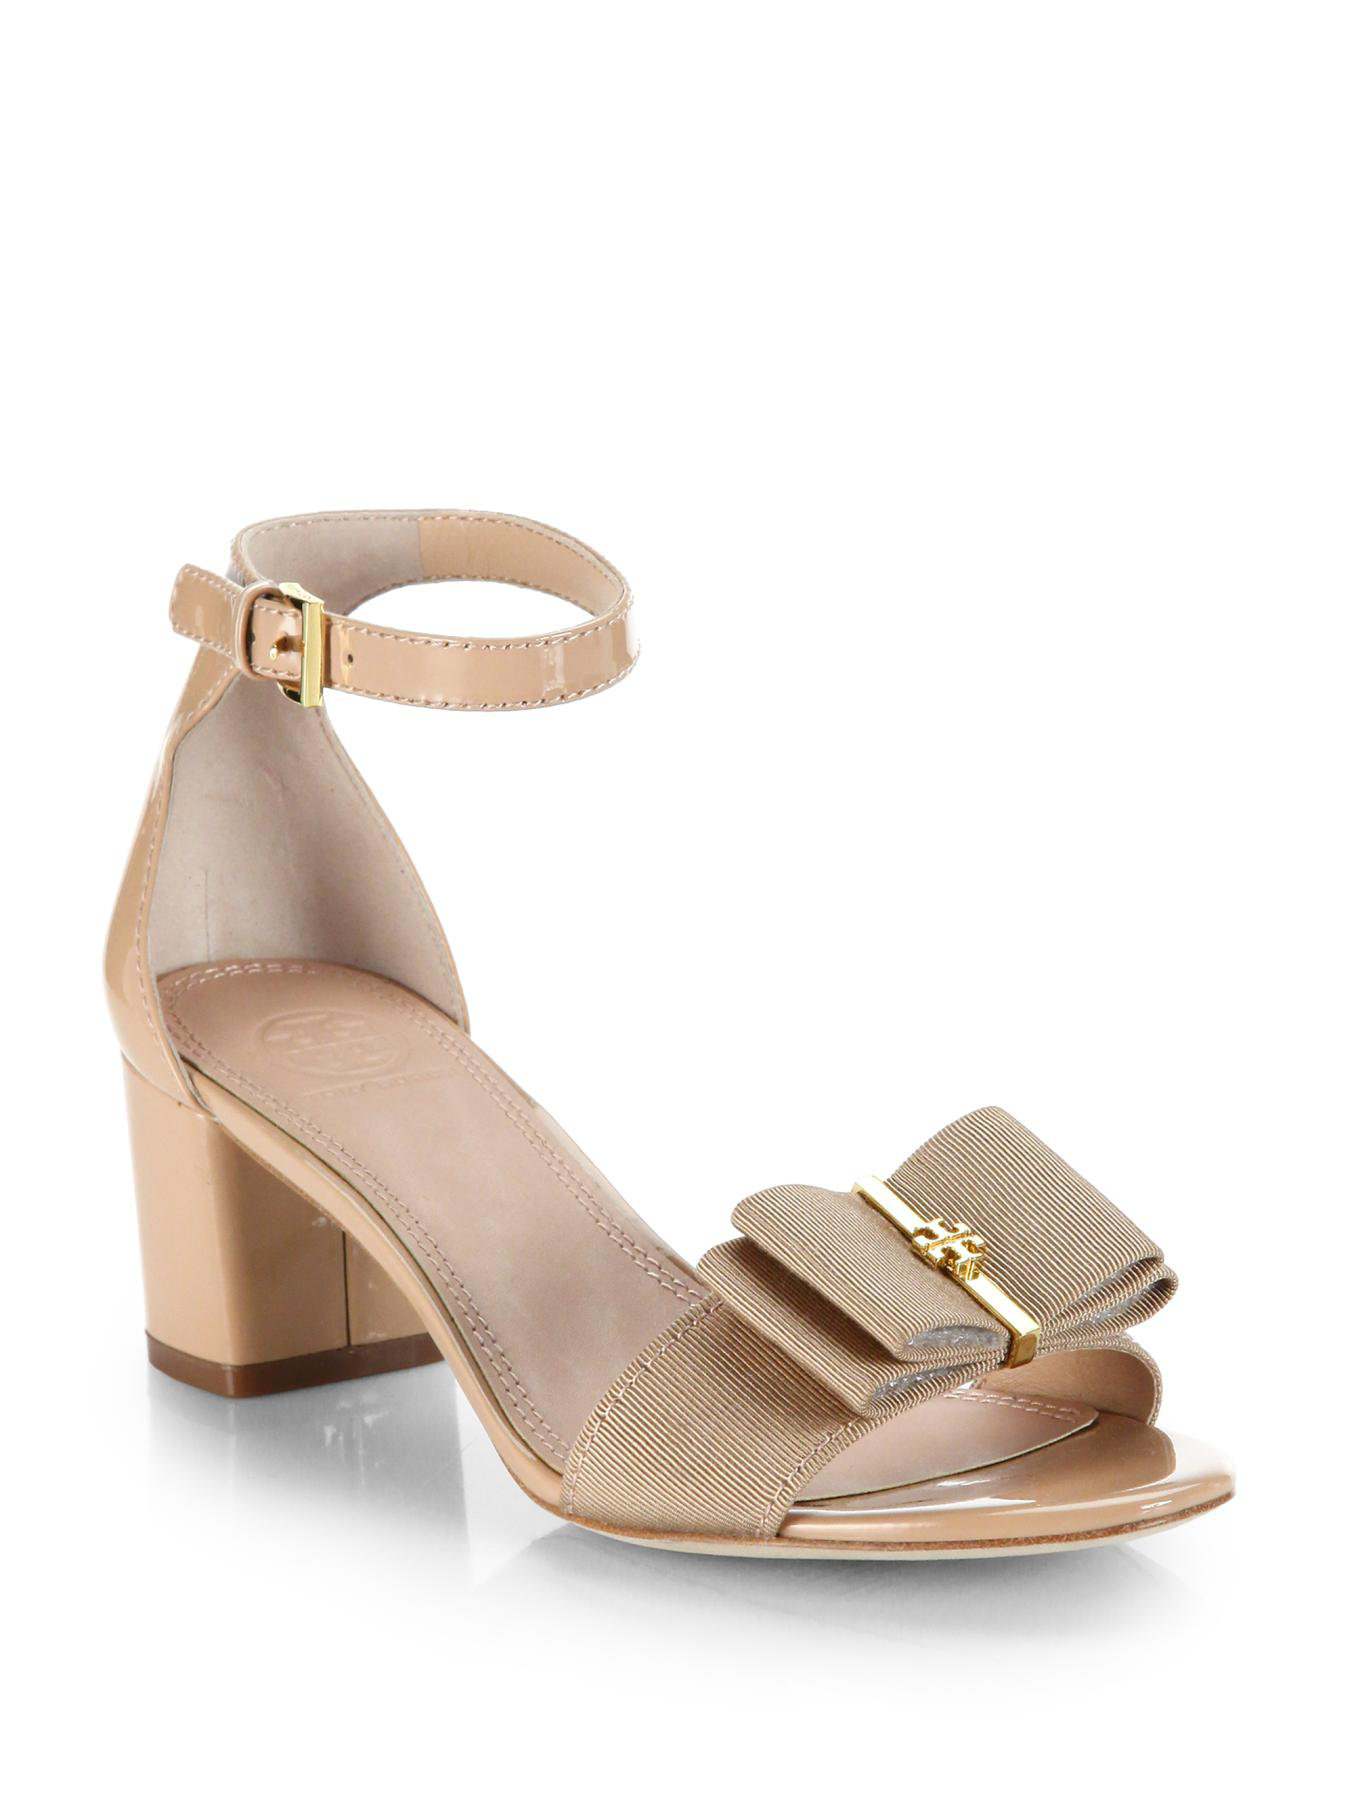 d42daeaa9e102 Lyst - Tory Burch Trudy Patent Leather Bow Sandals in Natural